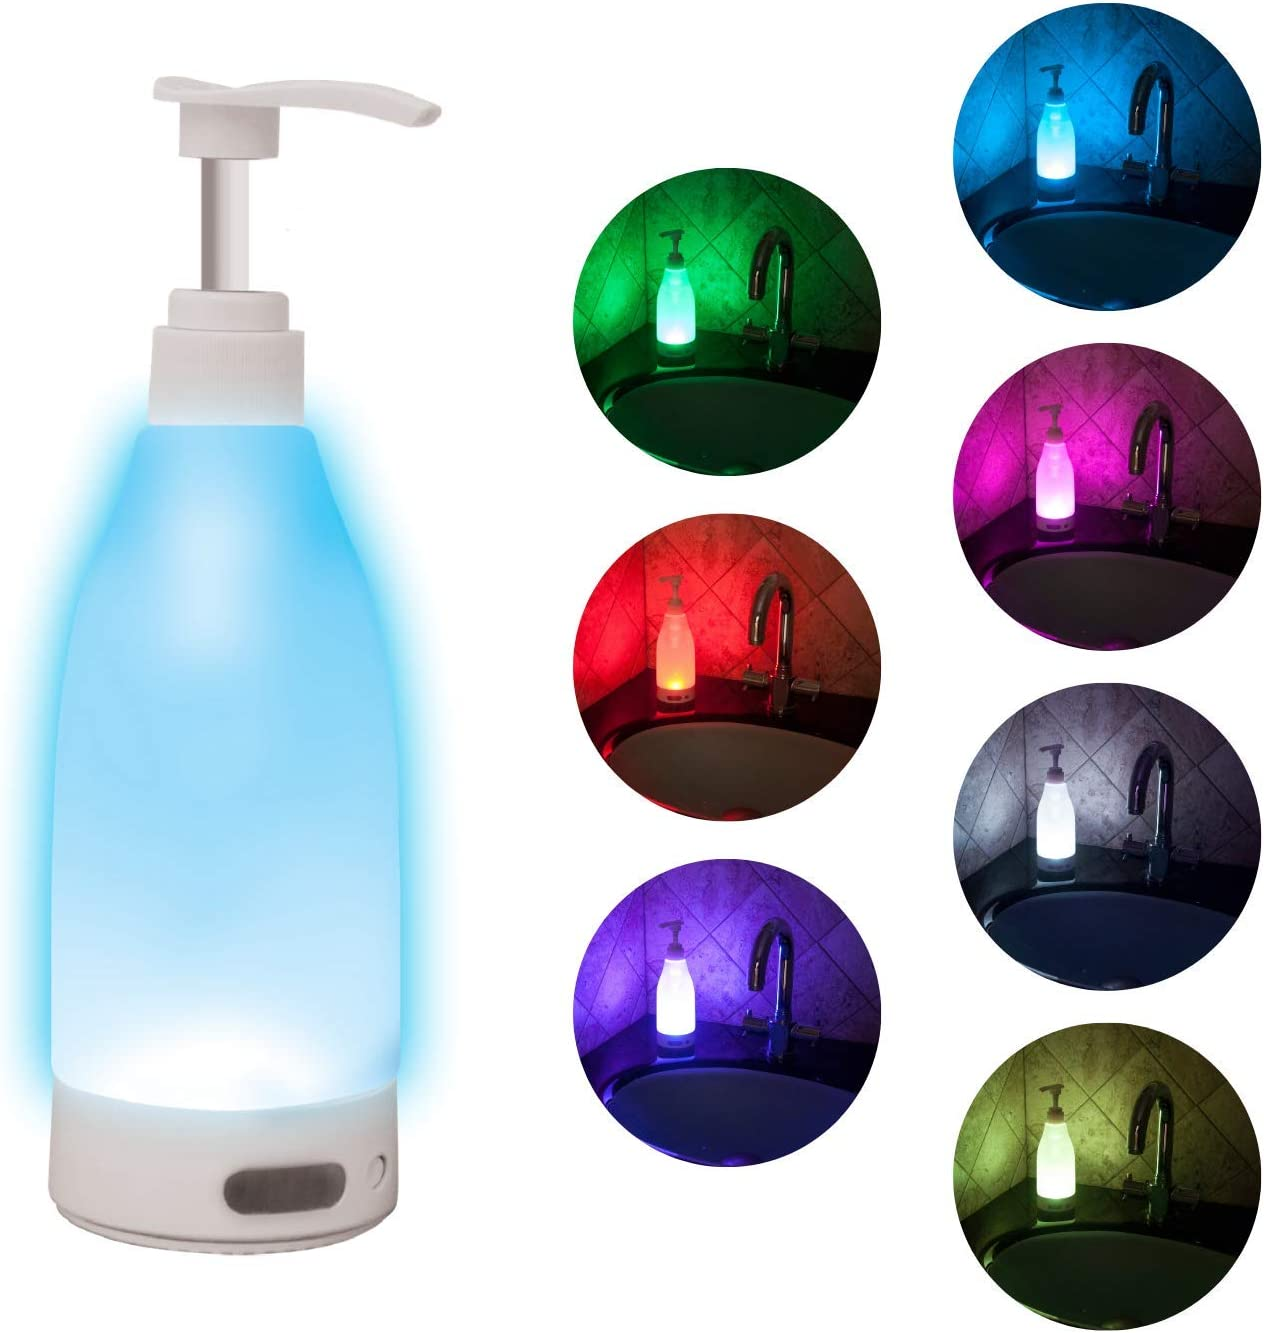 Soap Brite SOAP-MC6 LED Lighted Dispenser-12.8 Ounces-7 Soothing Color Options, Multi